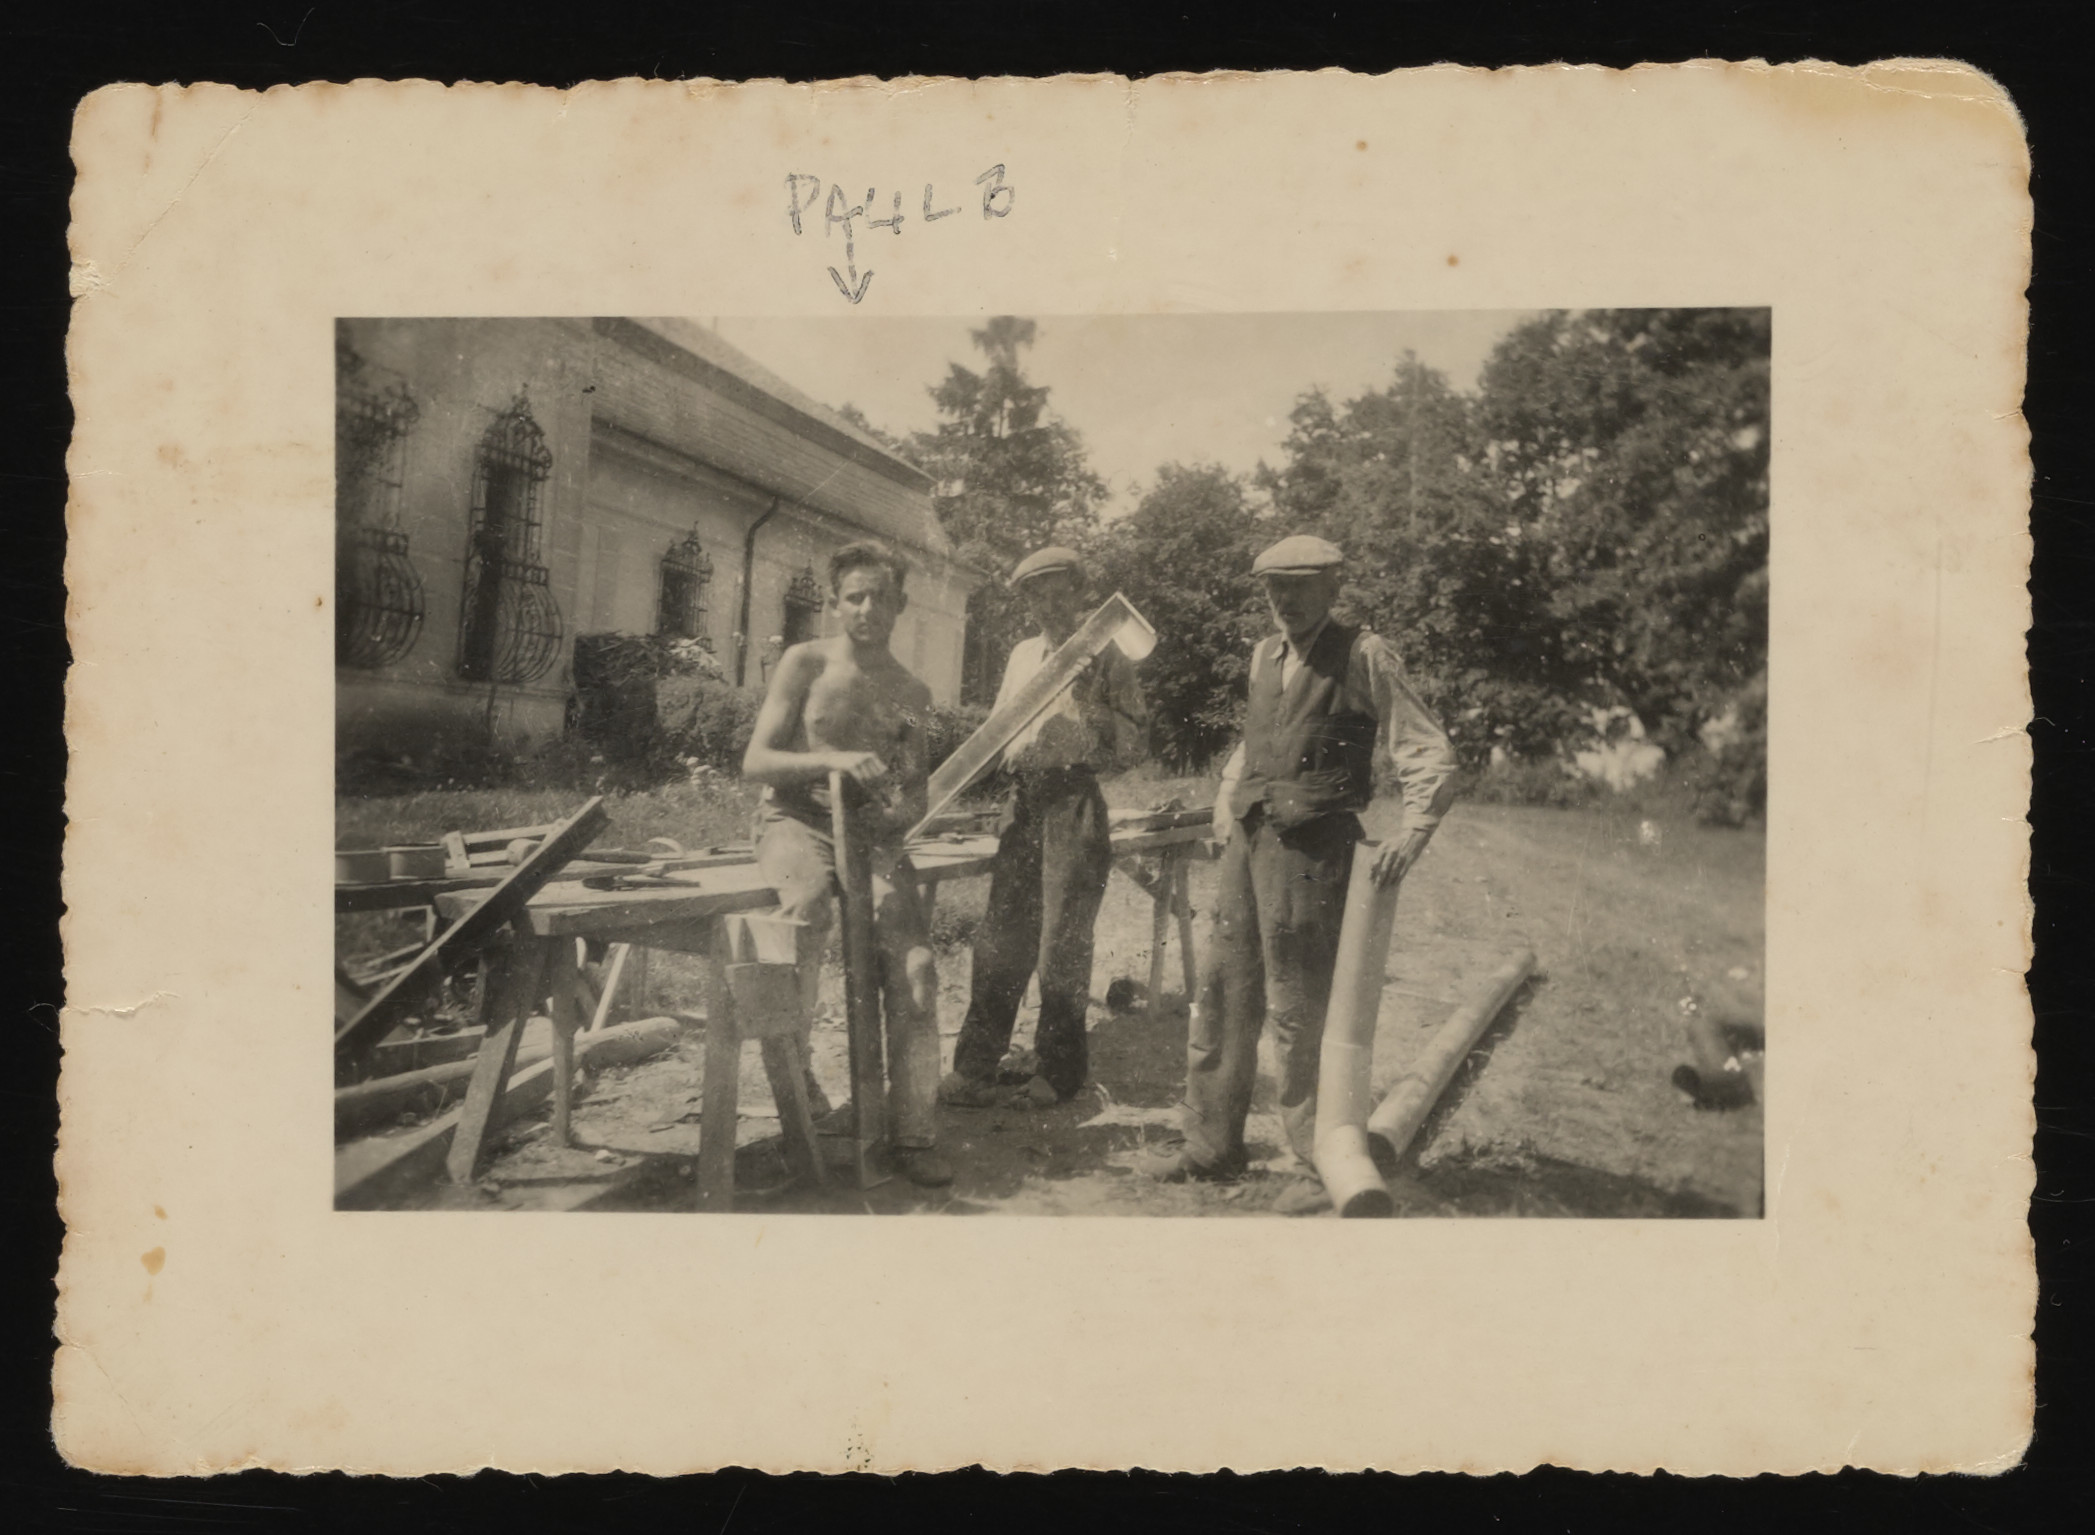 Three men work on a construction site in Szendro.  Pictured on the left is Paul Brunn, an apprentice roofer.  He was taken into forced labor and perished in the fall of 1944.